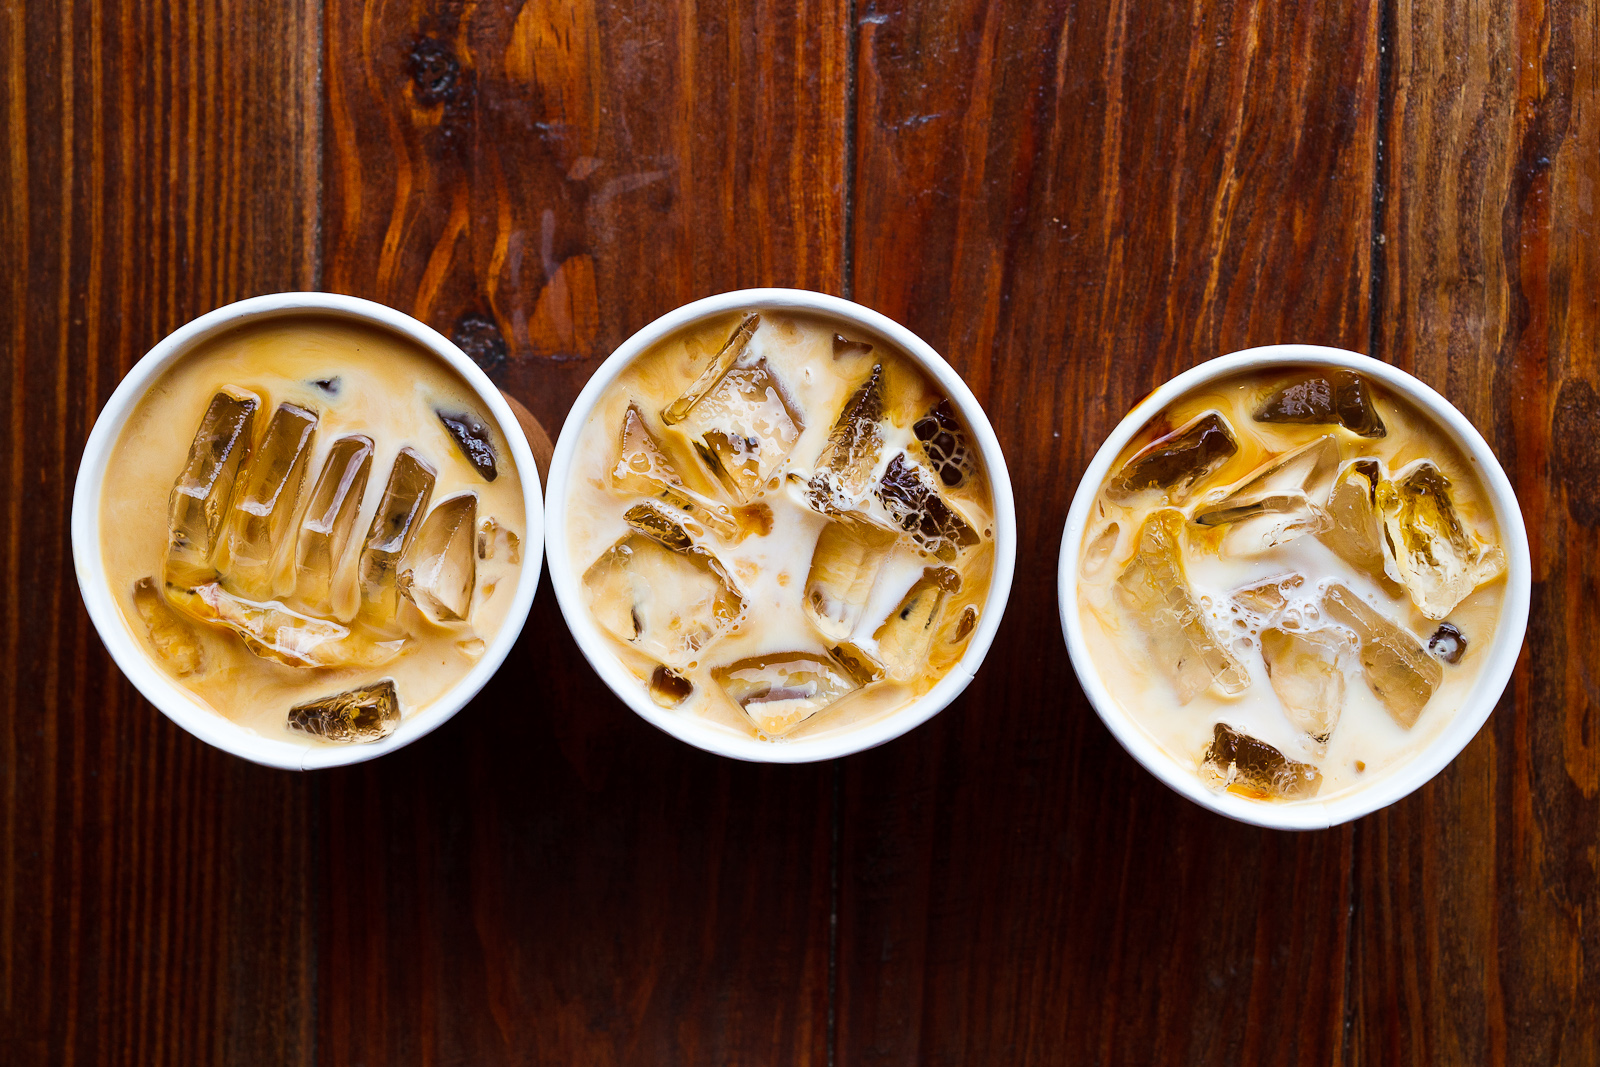 Triple New Orleans Iced Coffee ($4)